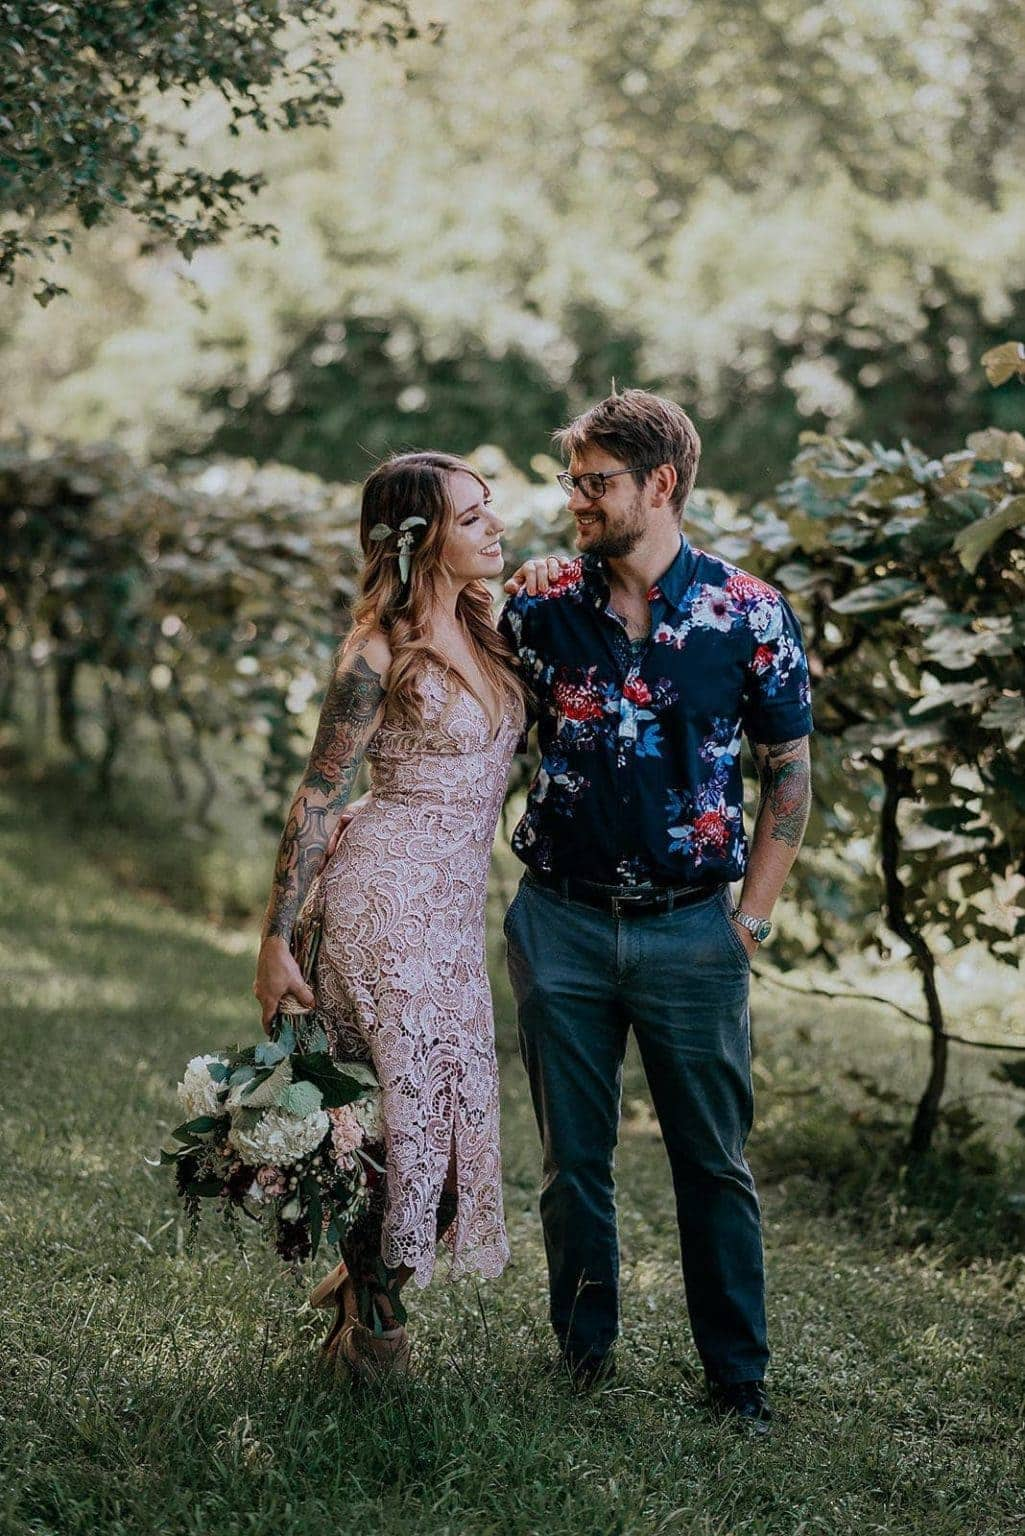 A newly-eloped couple embraces in a vineyard